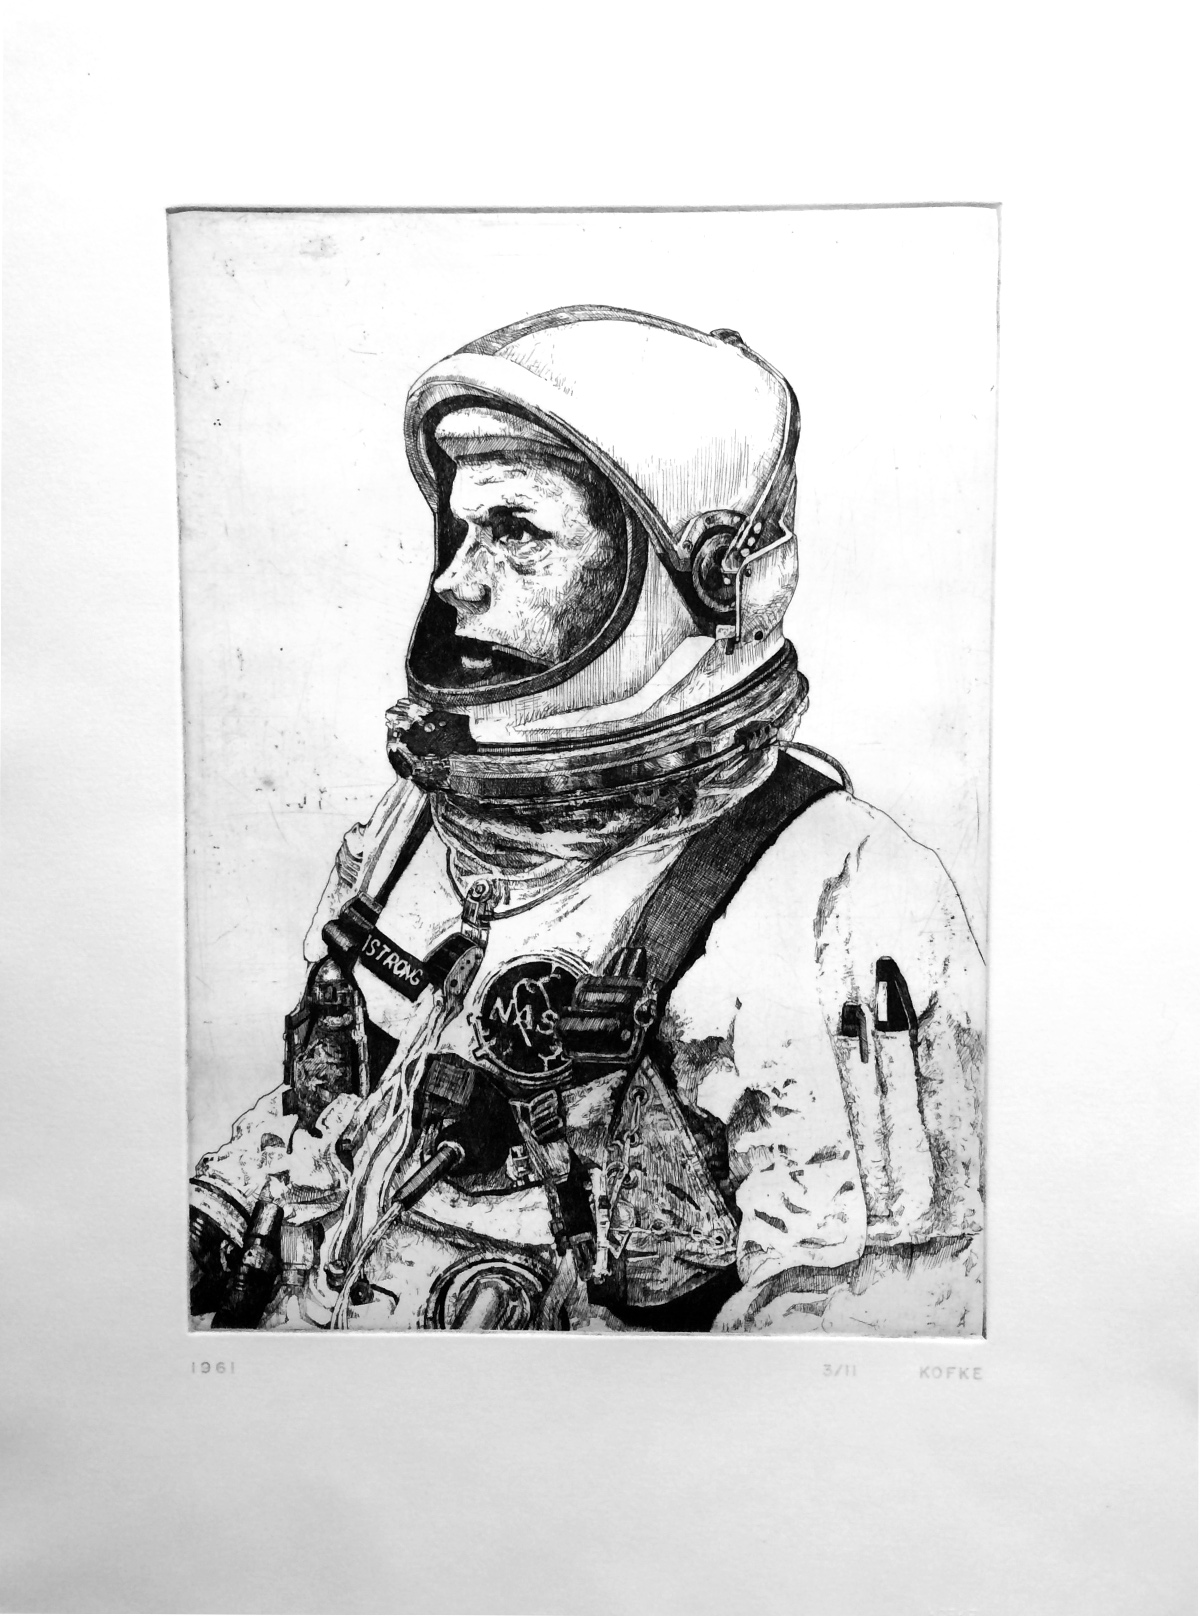 1961 etching edition of 11 22 x 16 inches JKO 056G